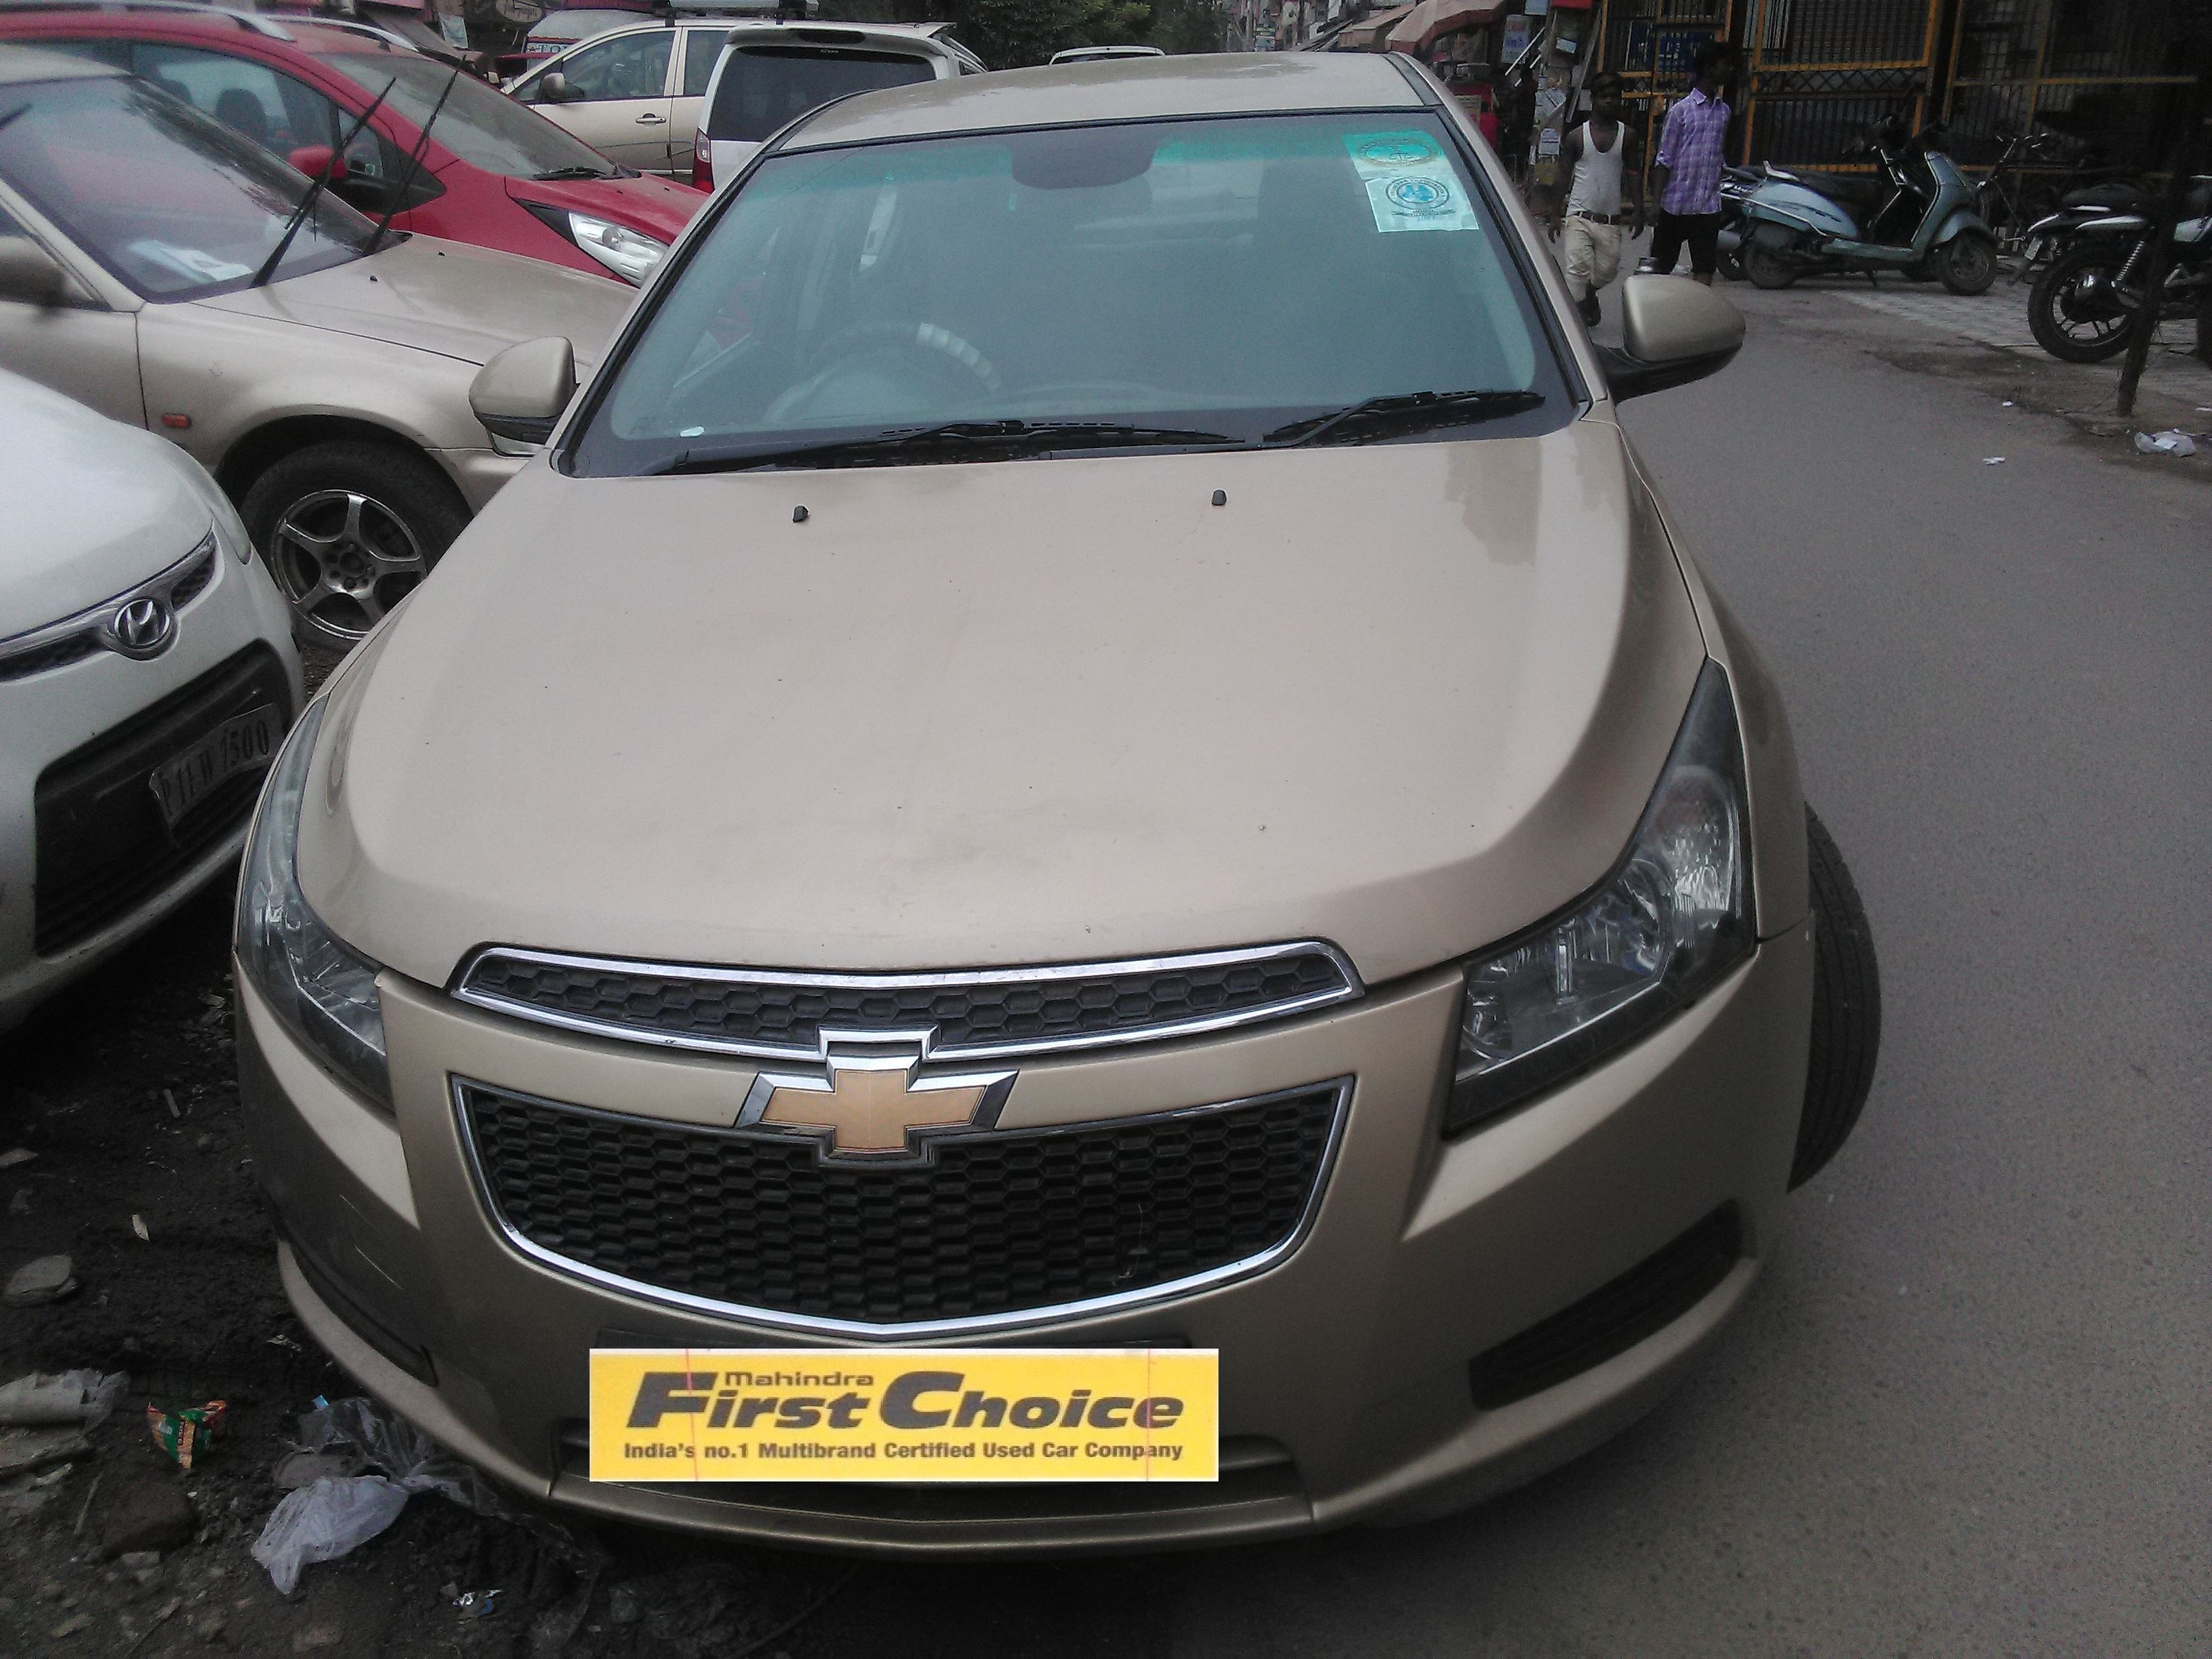 2011 Used CHEVROLET CRUZE LT